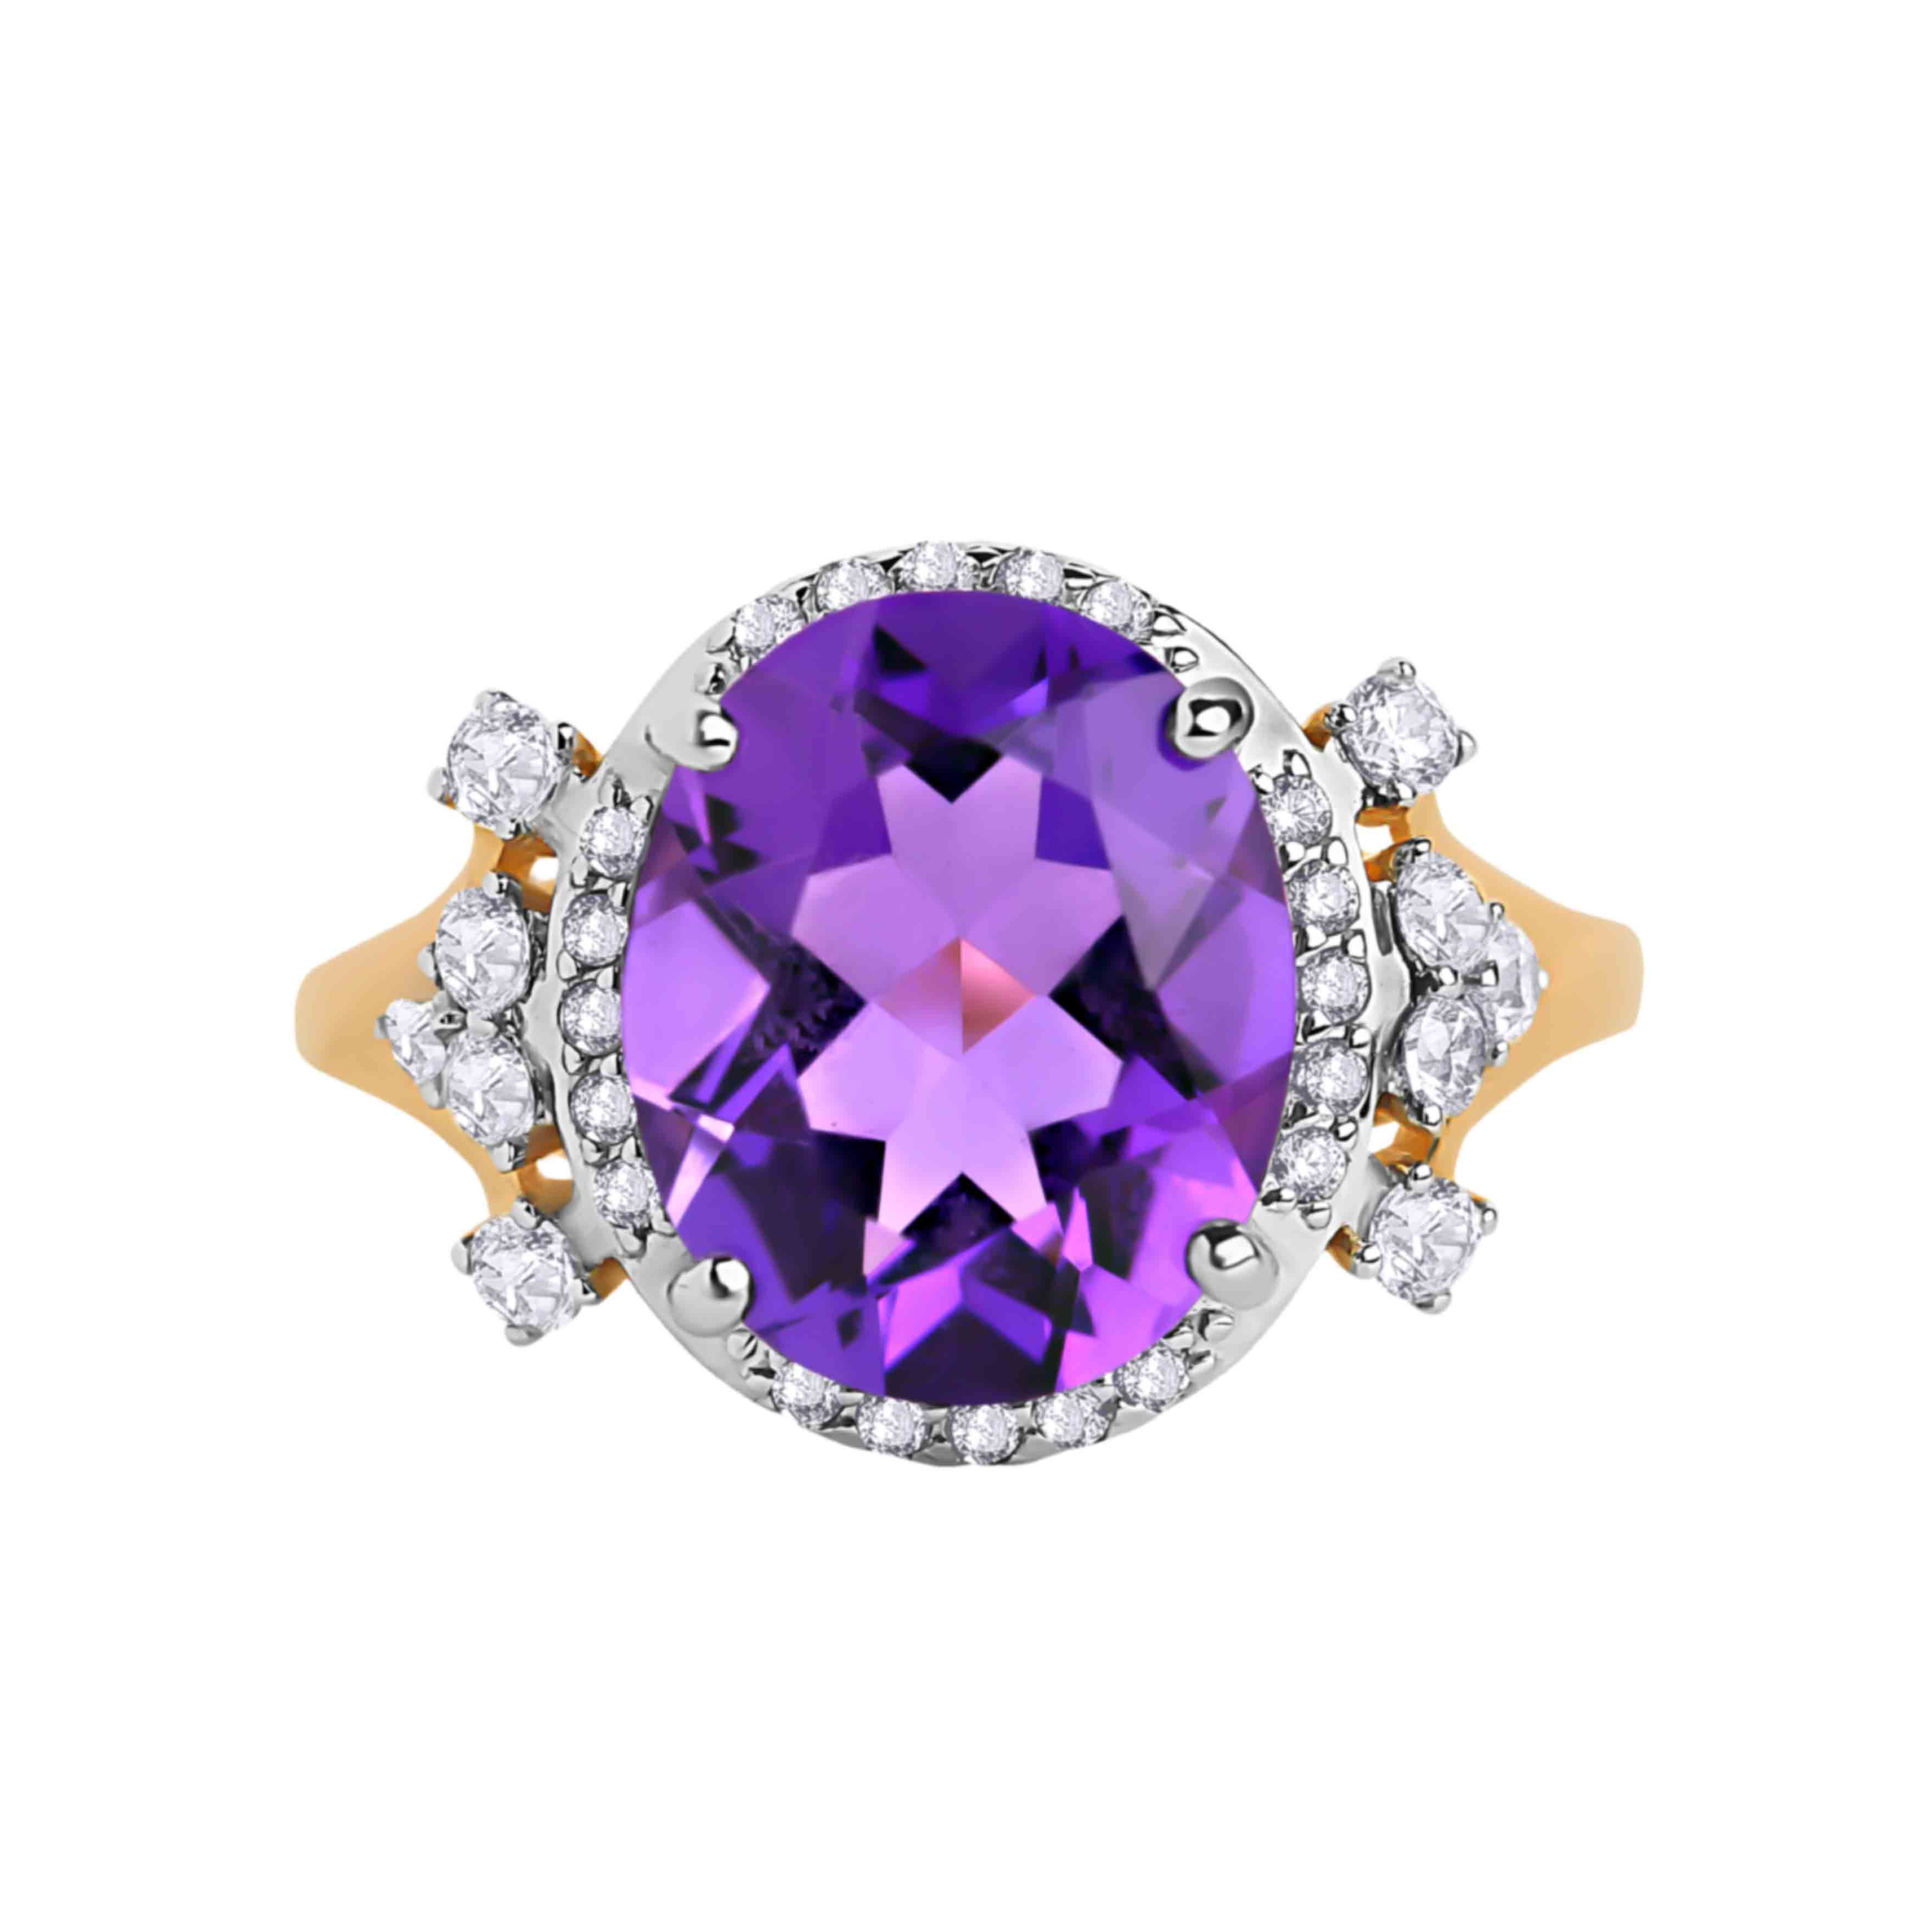 Oval-shaped Amethyst Cocktail Ring. View 2